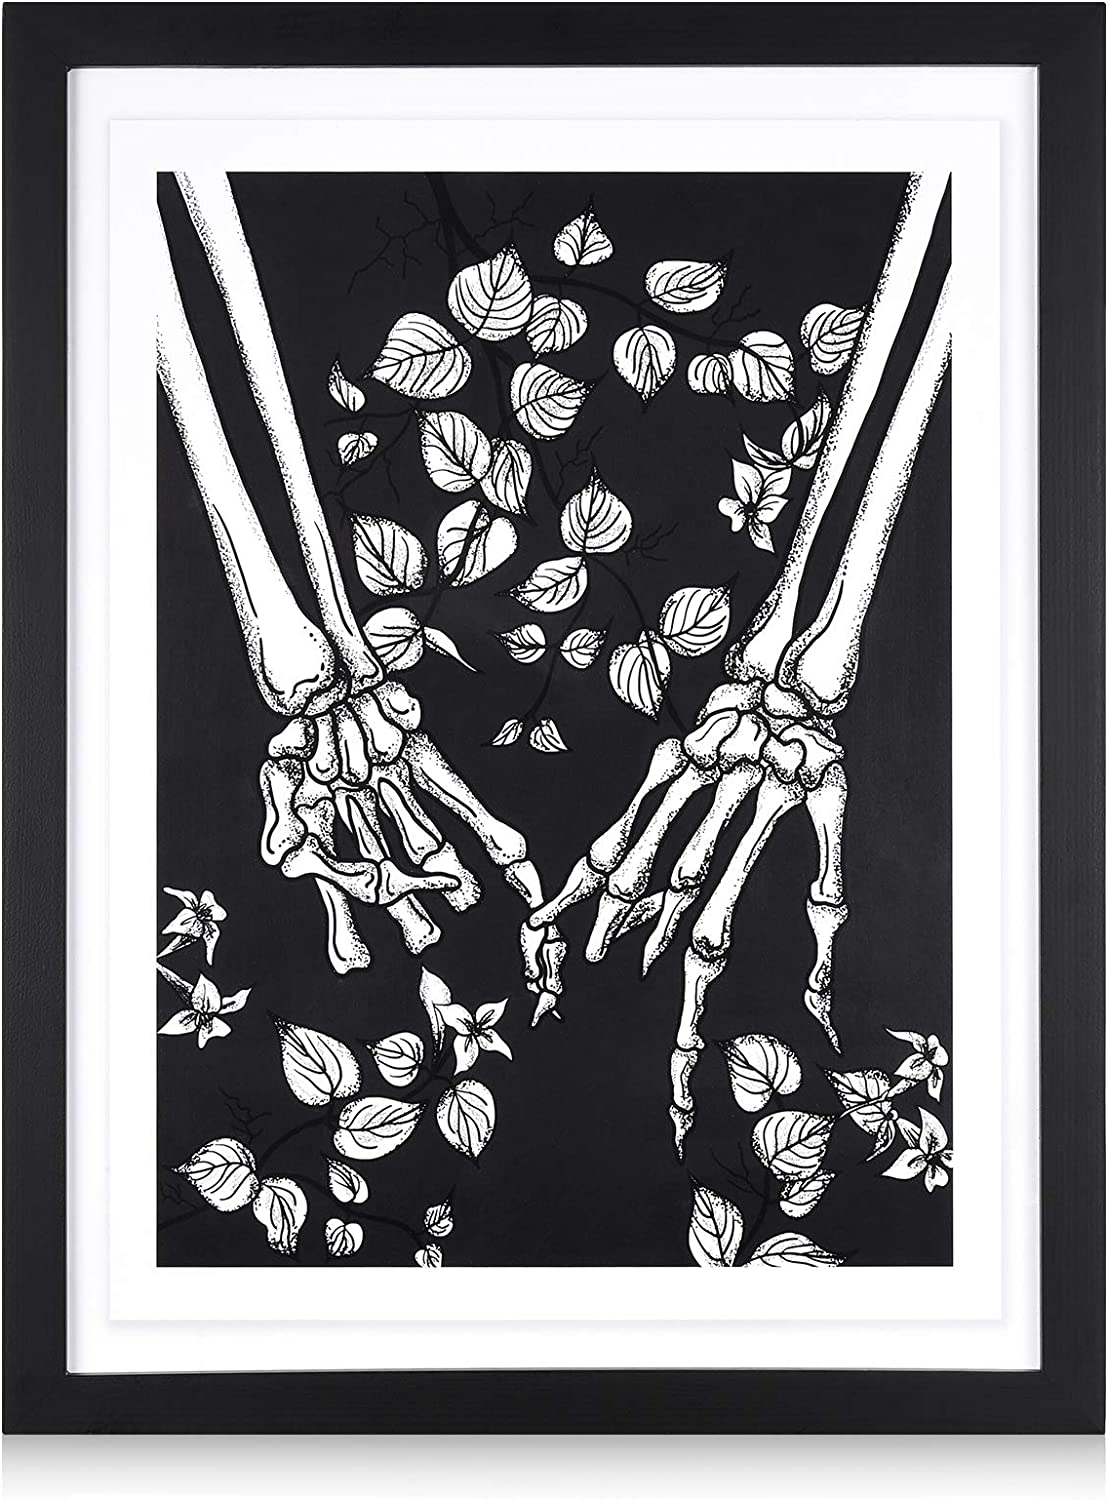 Gothic Wall Decor Art for Bedroom – Skull Bathroom Wall Decor – Edgy Aesthetic Dark Room Decoration for Teens but Not Only - FRAMED Wooden Hand in Hand 13x17 inch. Black and White Picture by Disar